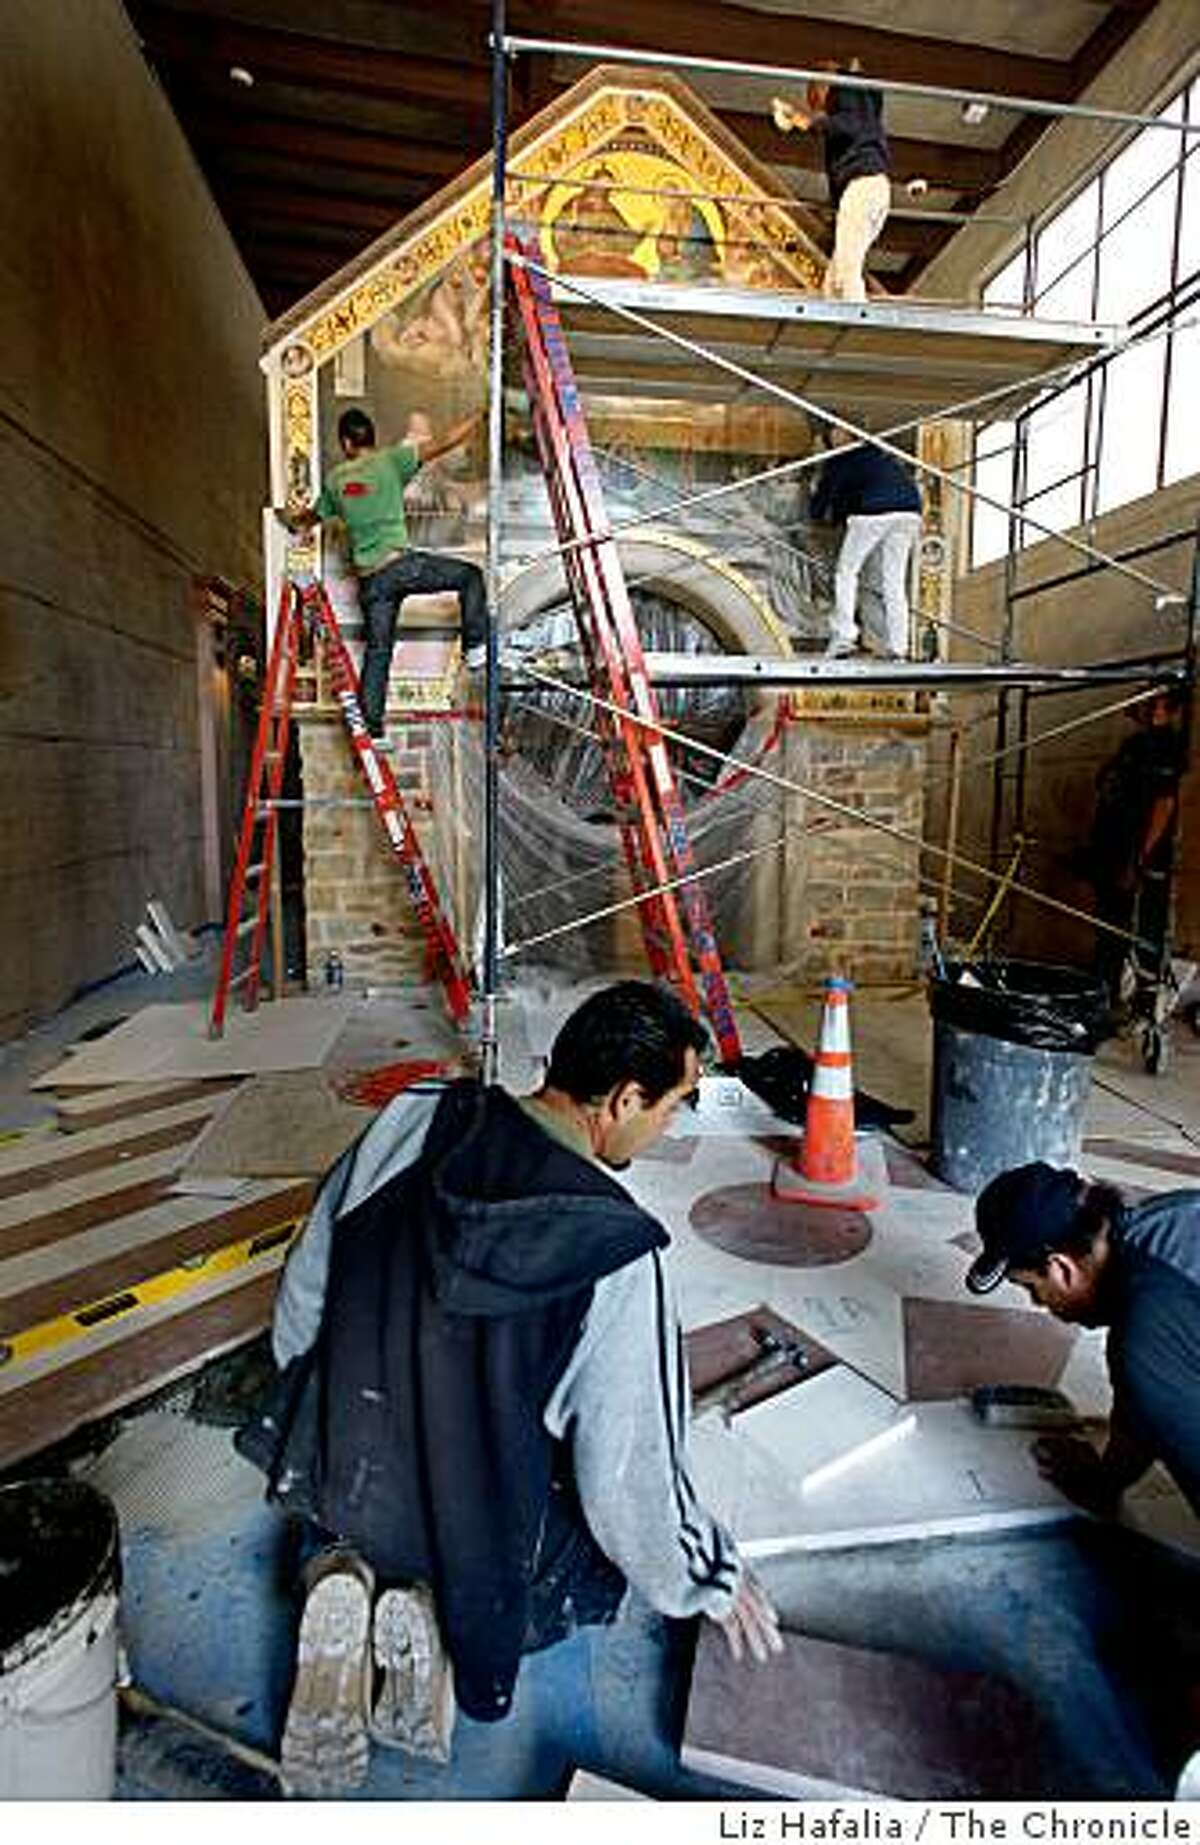 Artists and builders working on the shrine of St. Francis in North Beach in San Francisco, Calif., on Wednesday, August 27, 2008 to recreate a replica of the famed Portziuncola chapel in Assisi that St. Francis himself restored.